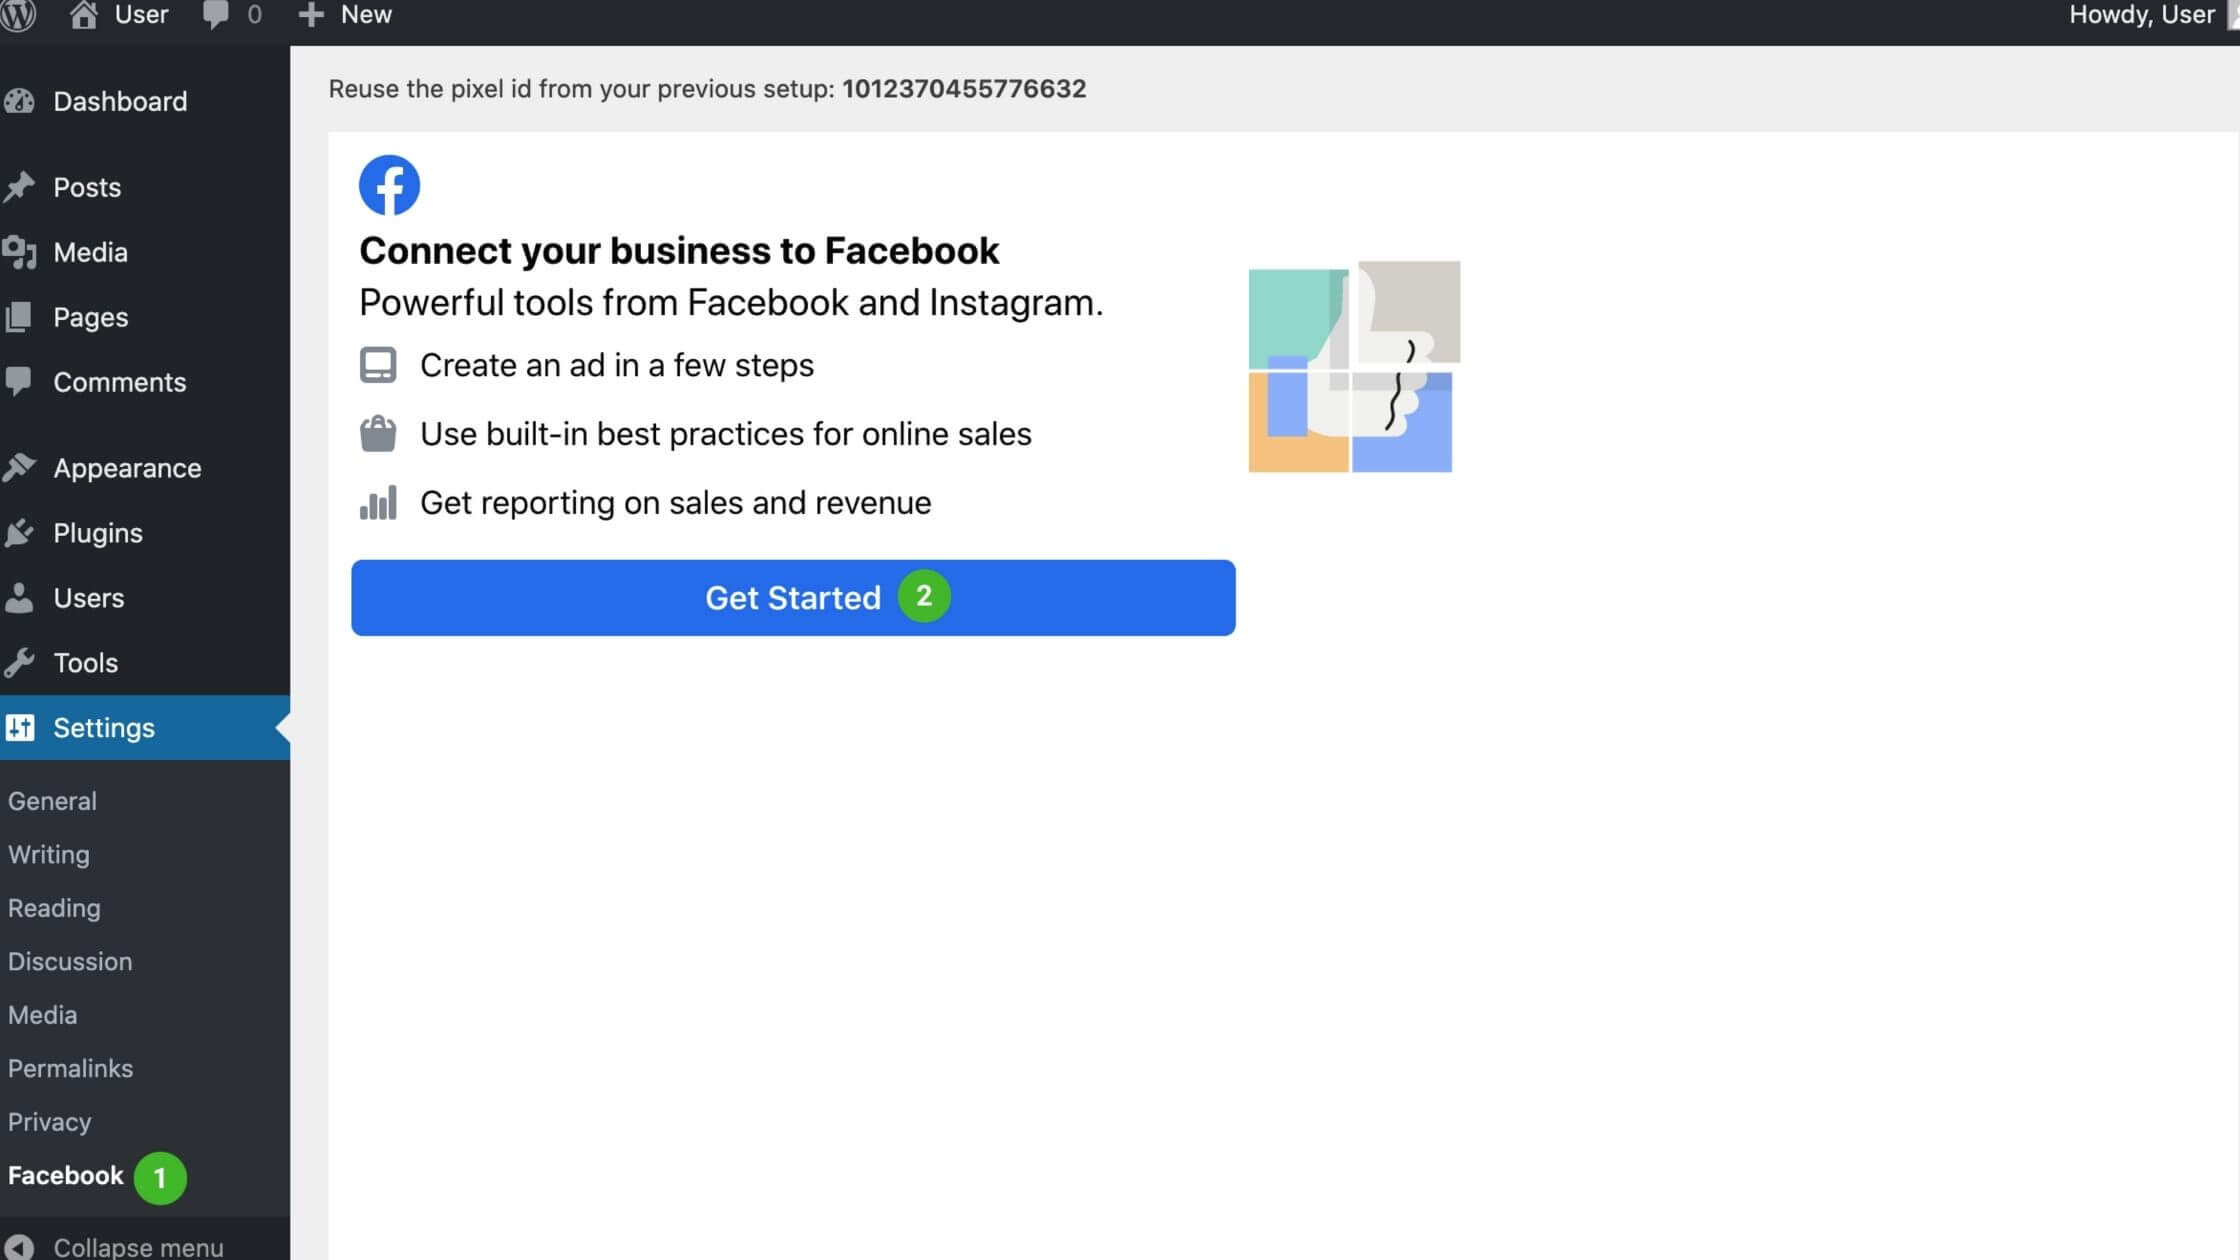 Connect business to Facebook